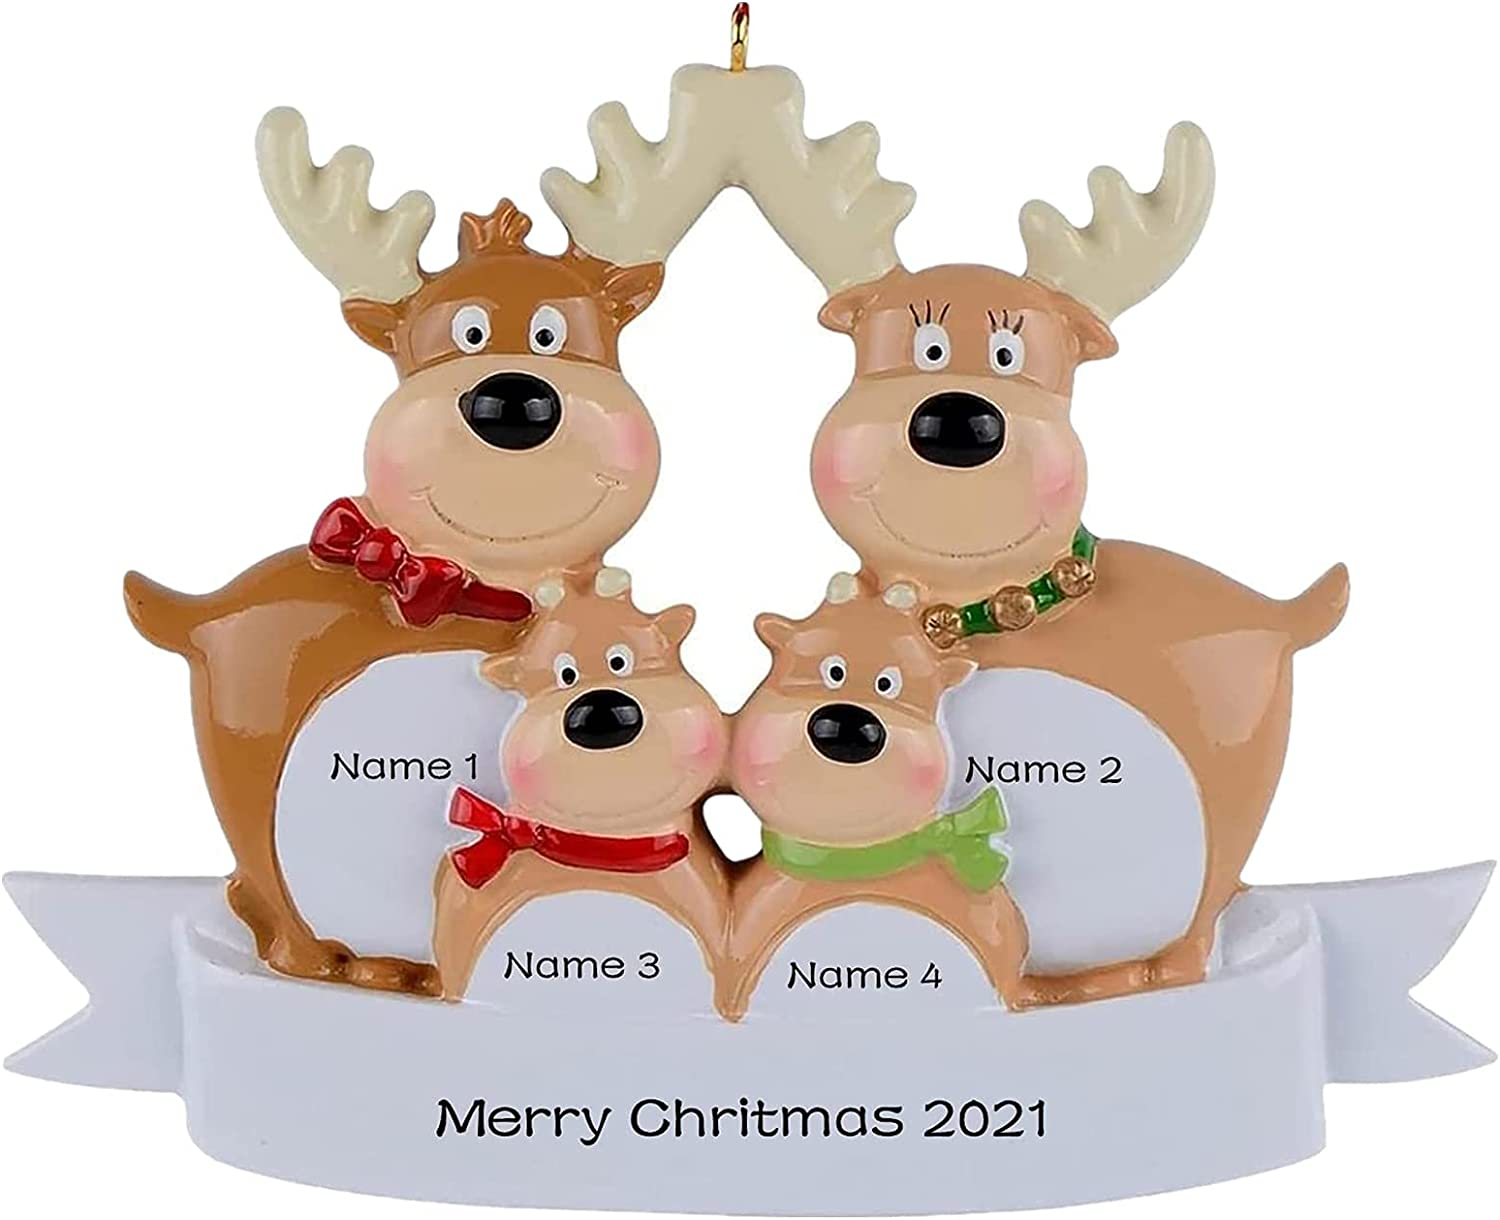 Max 66% OFF 2021 Personalized Reindeer Christmas Commemorative Ornament Dedication Orn